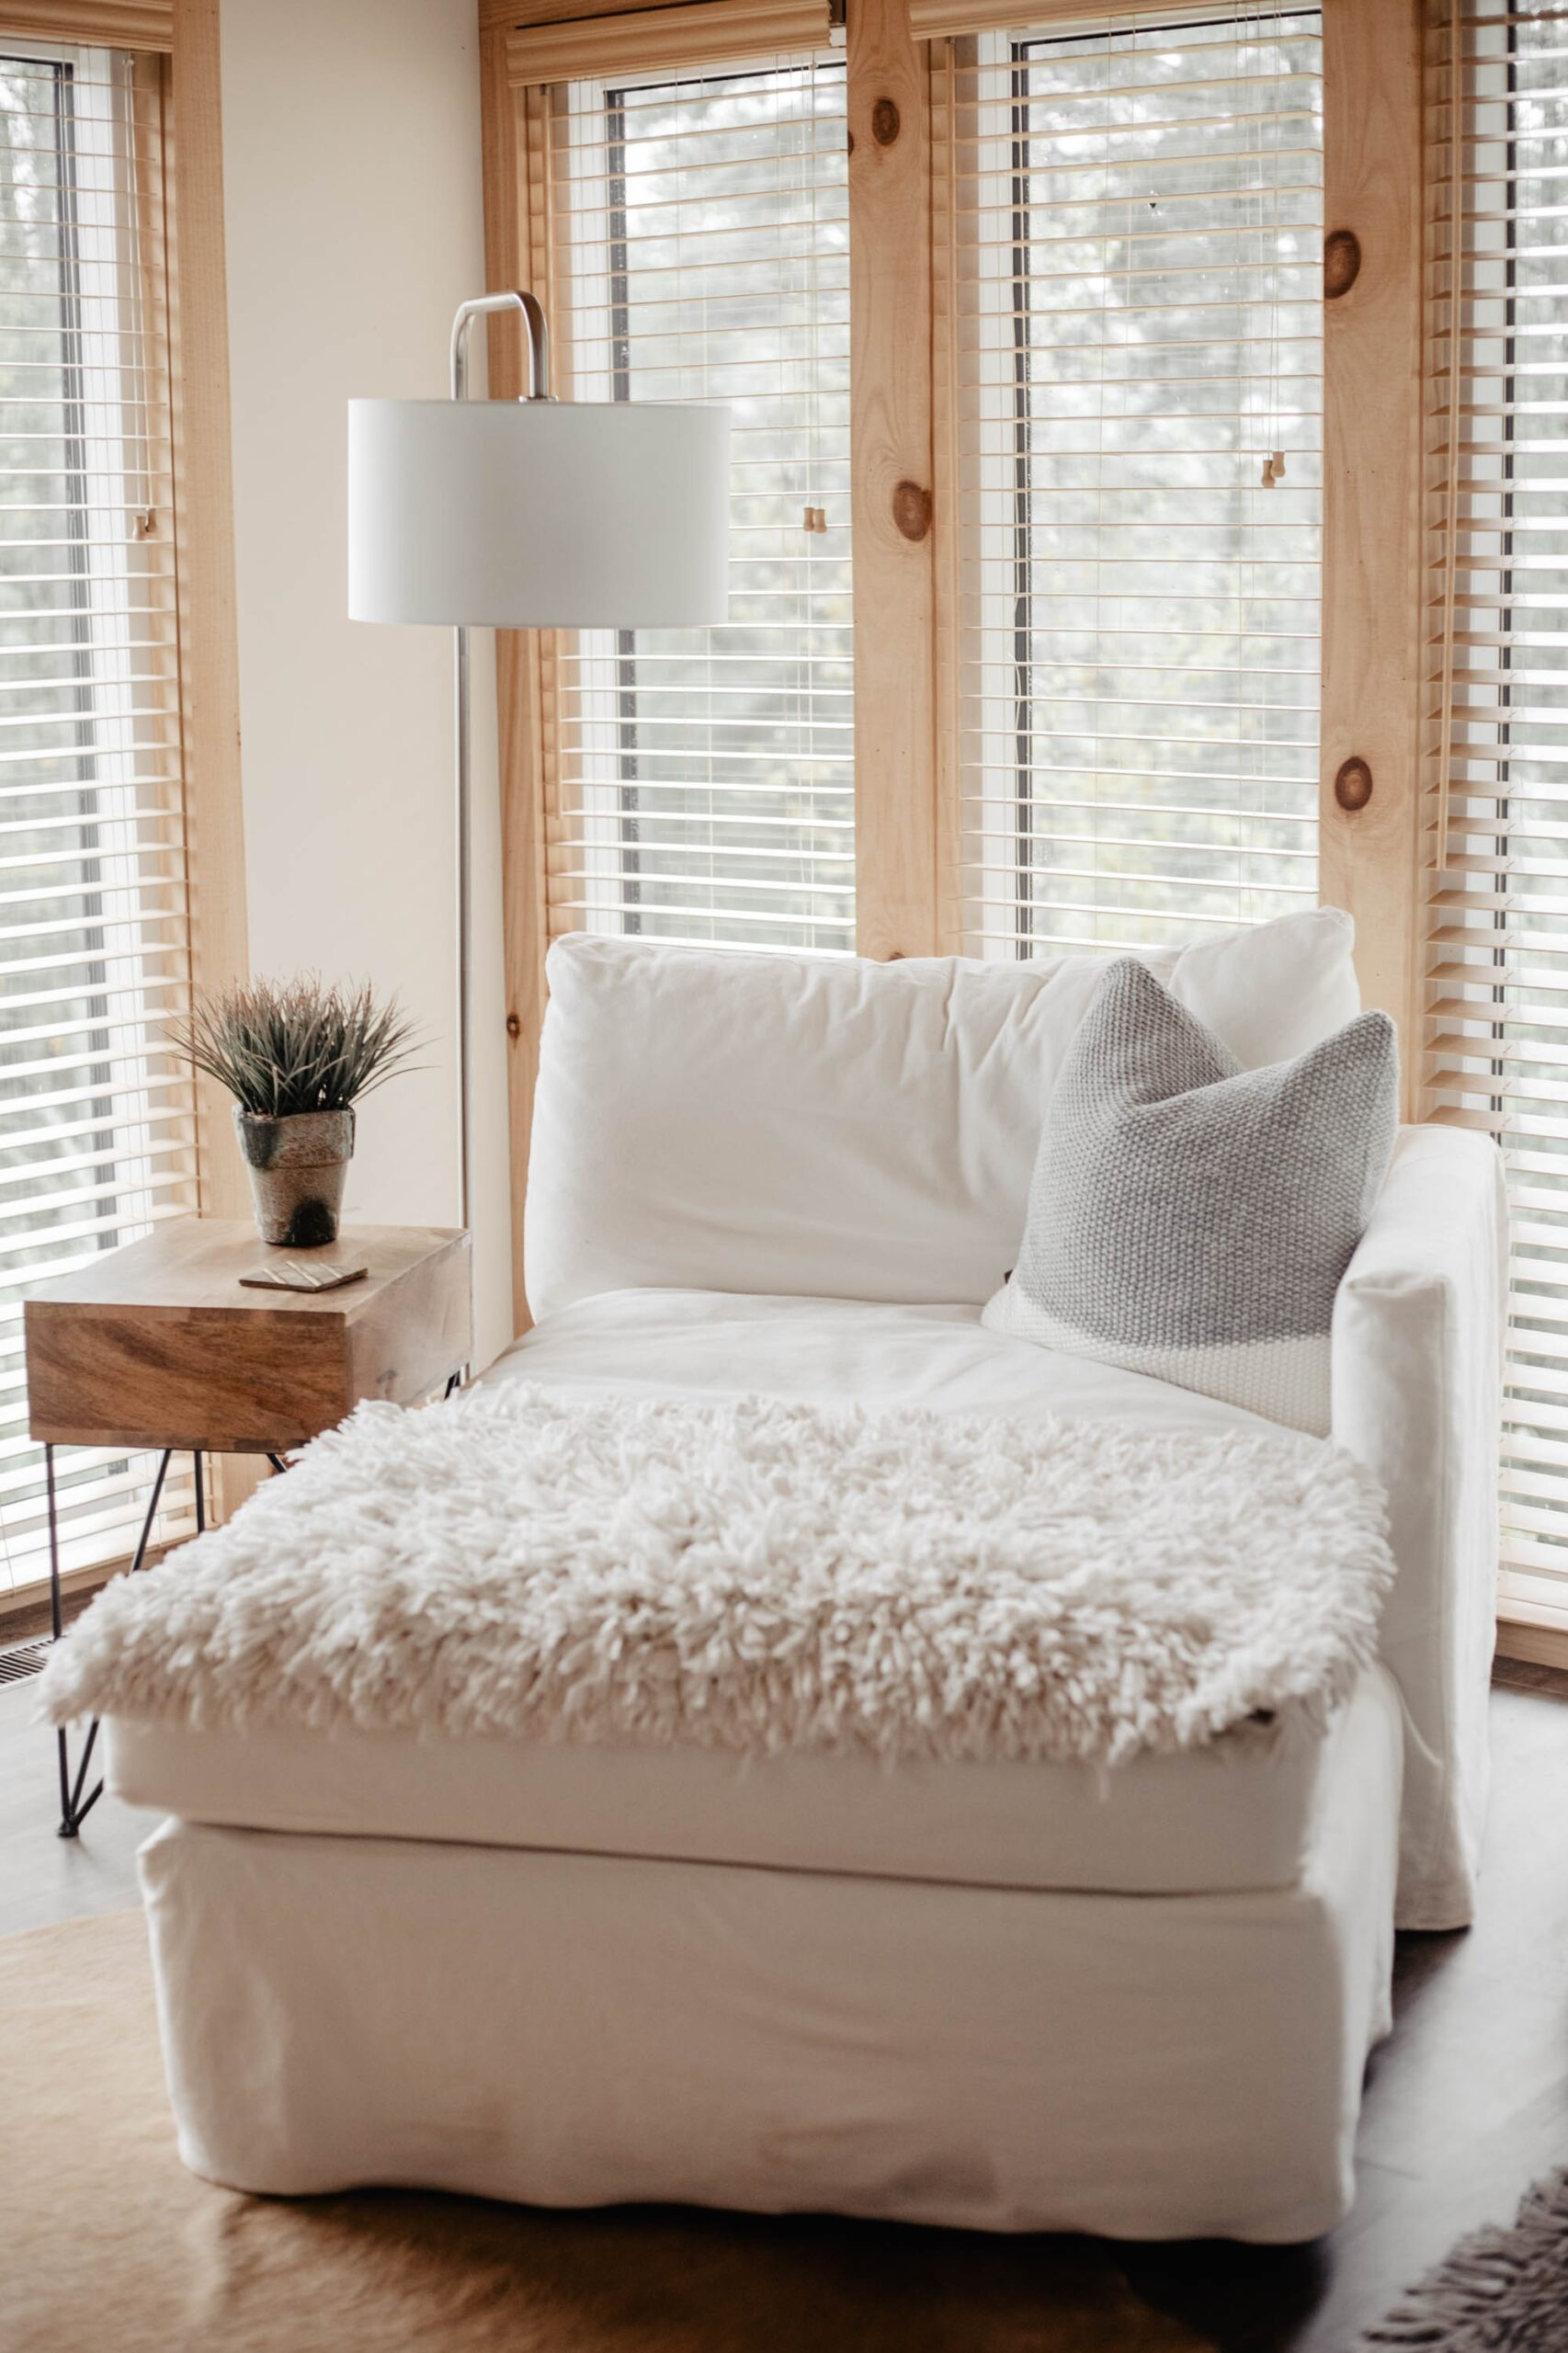 Honest Review of the King-Sized Puffy Mattress - alayna doyal